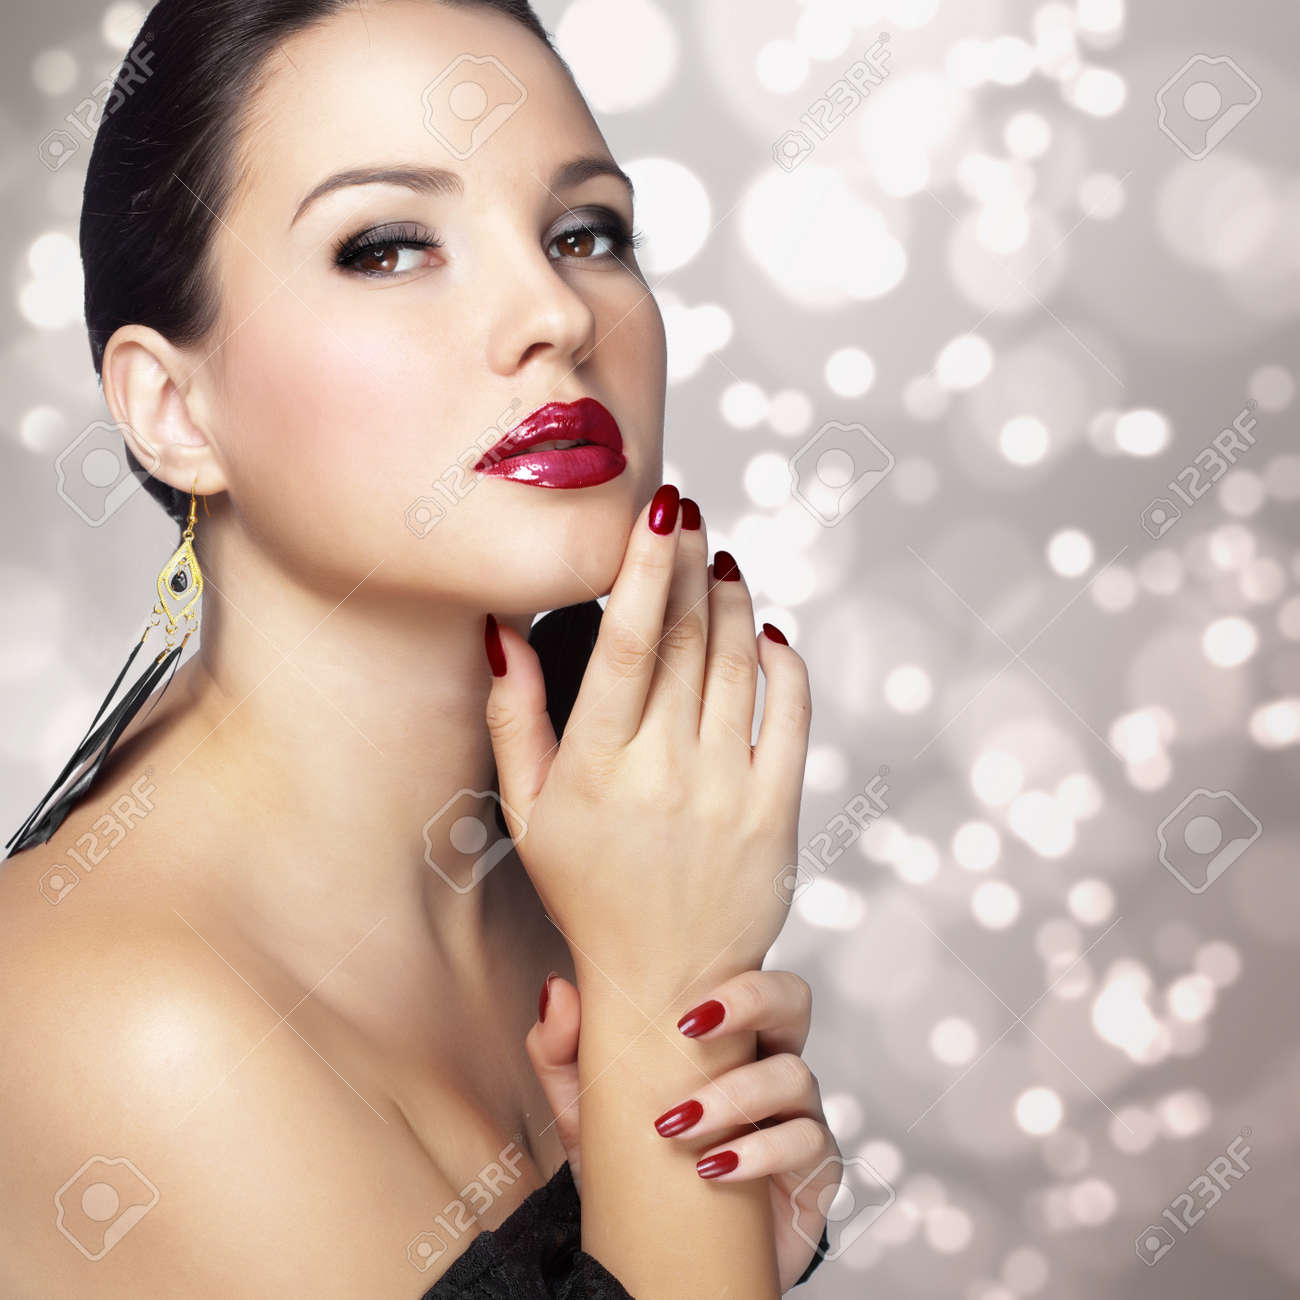 Portrait of beautiful woman with perfect make up over party lights Stock Photo - 18299647